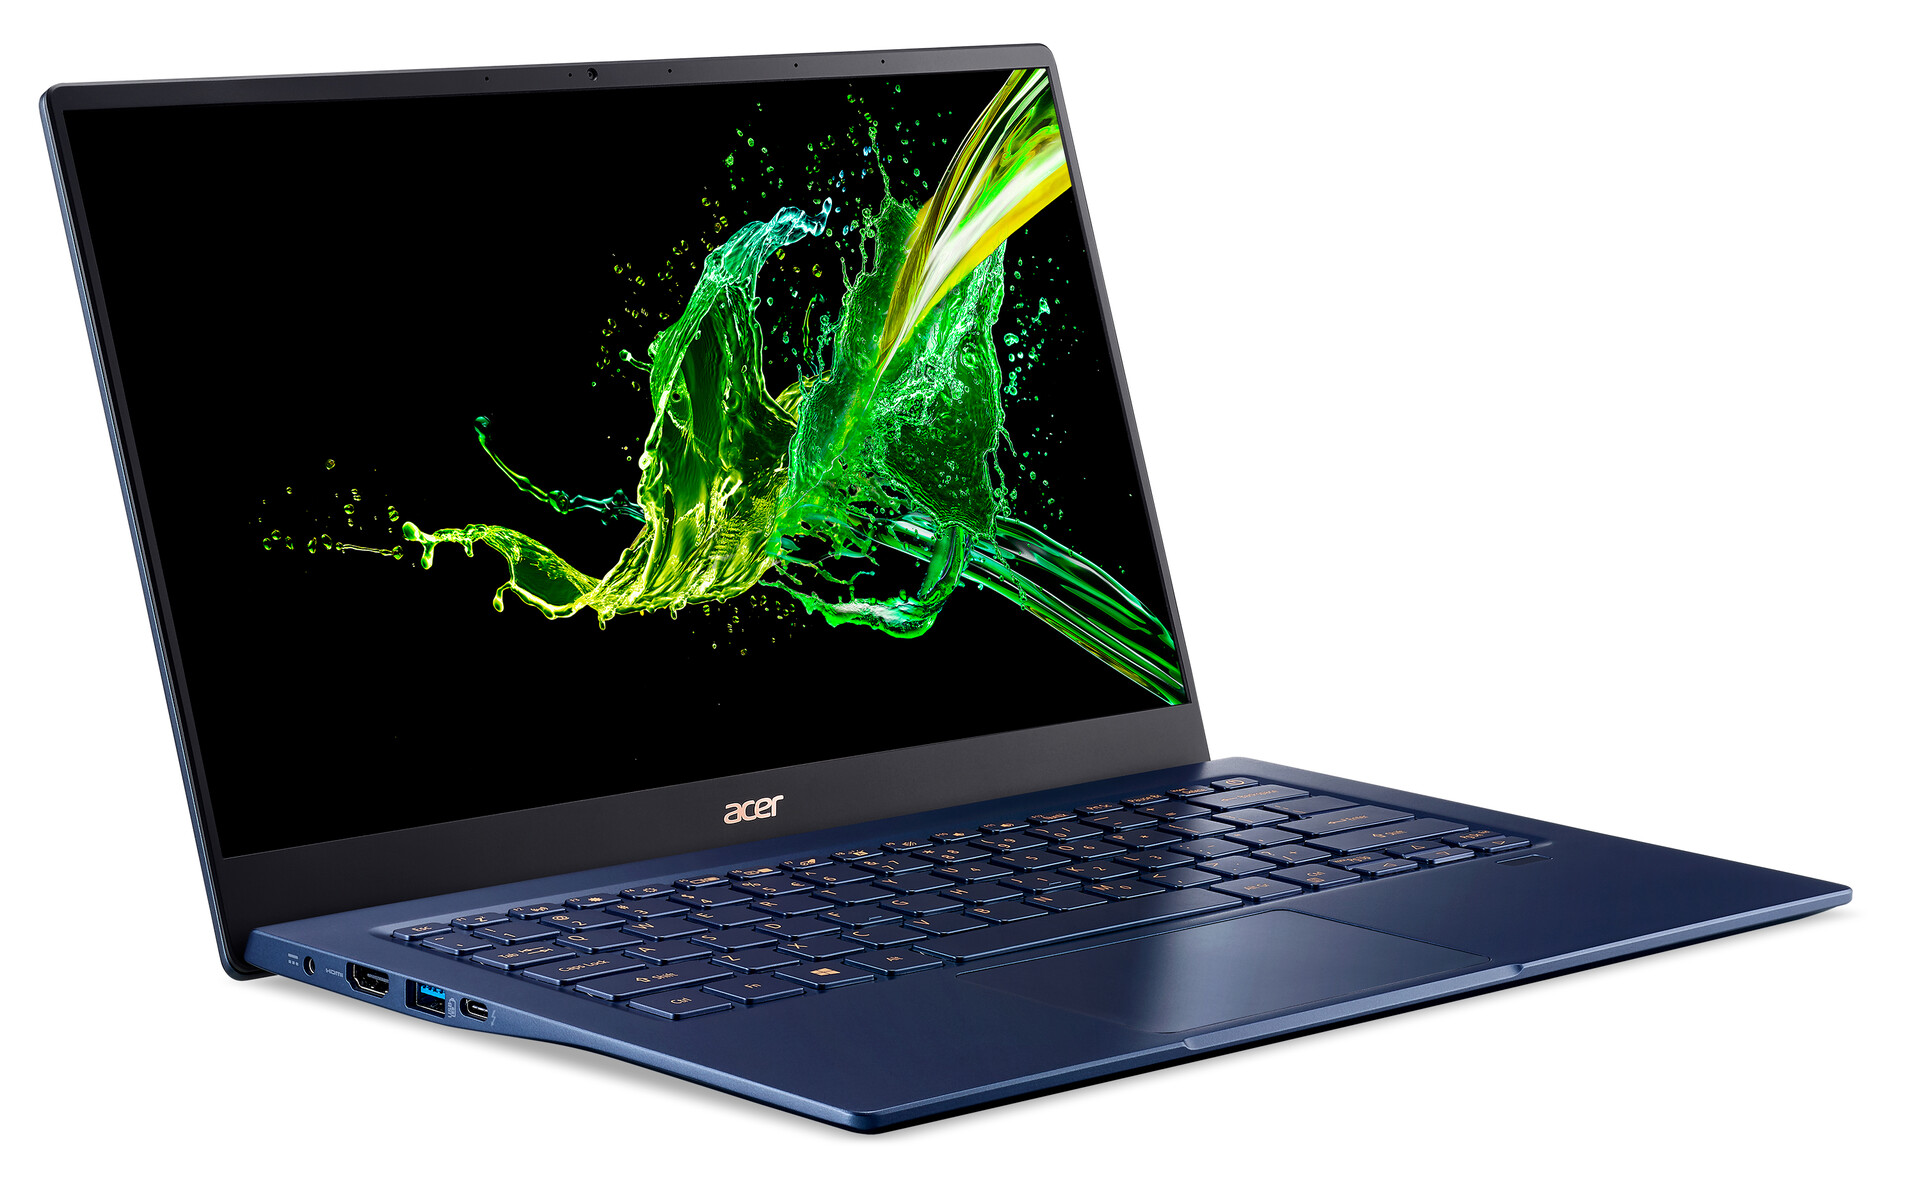 The Acer Swift 5 gets an upgrade to Intel Ice Lake and NVIDIA MX250